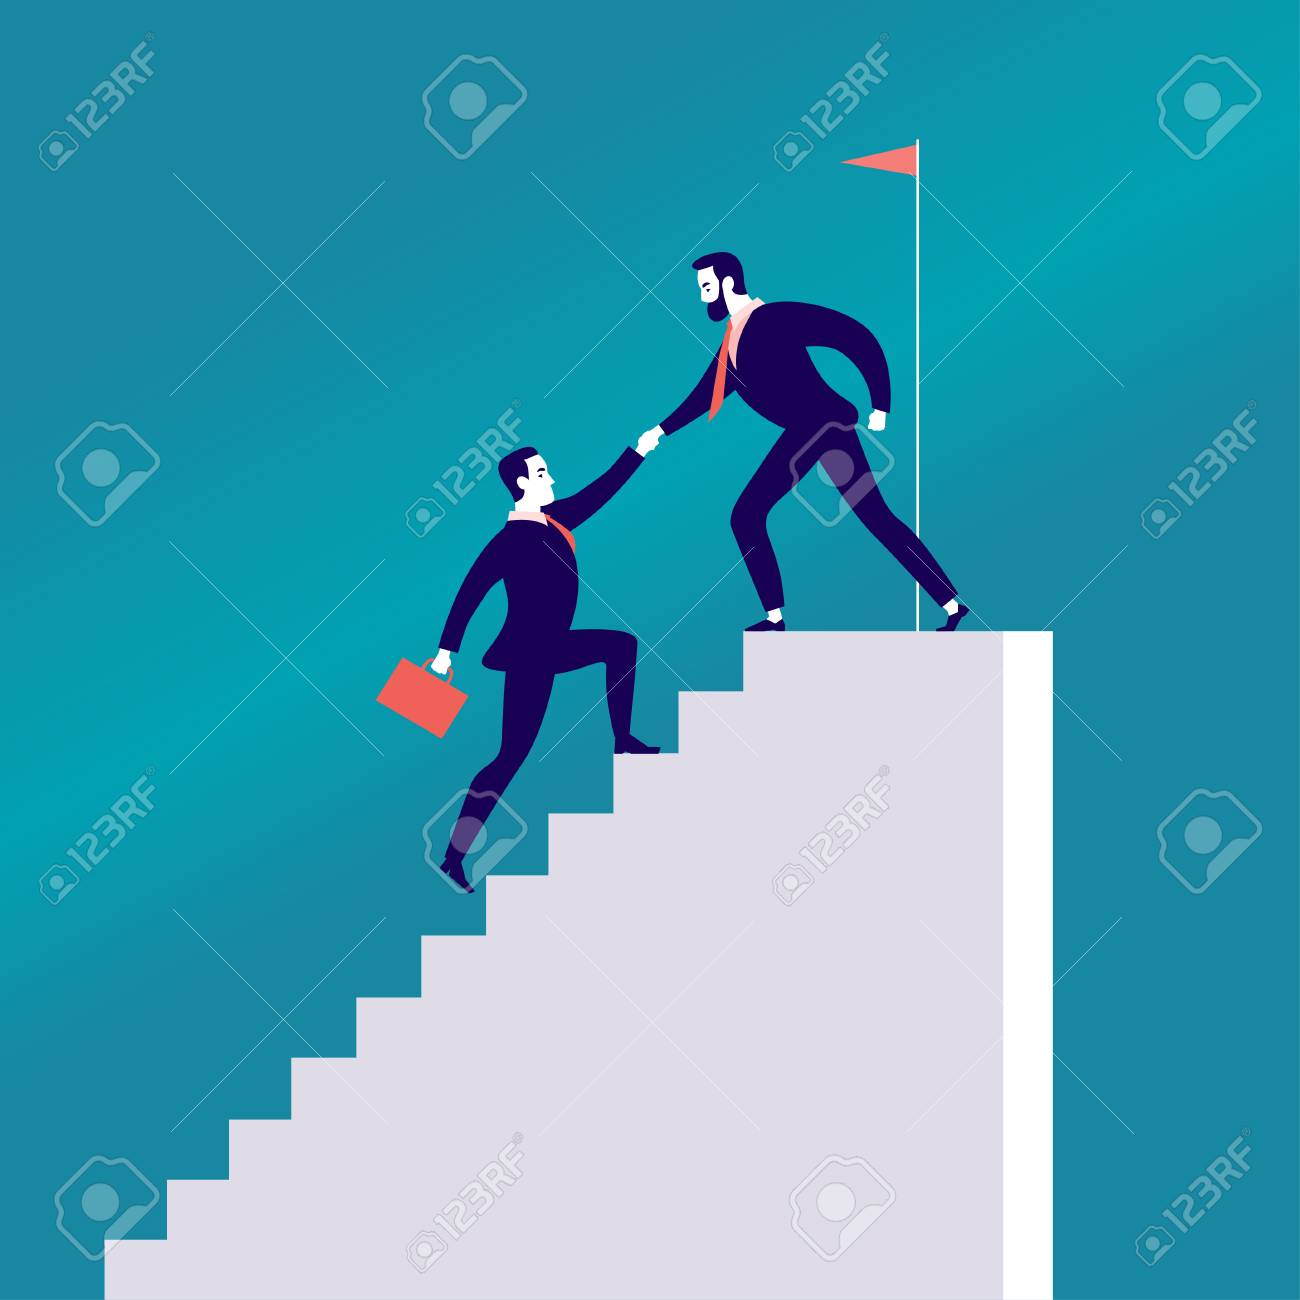 Vector flat illustration with business people climbing together on white stairs isolated on blue background. Team work, achievement, reaching aim, partnership, motivation, support - metaphor. - 100020891